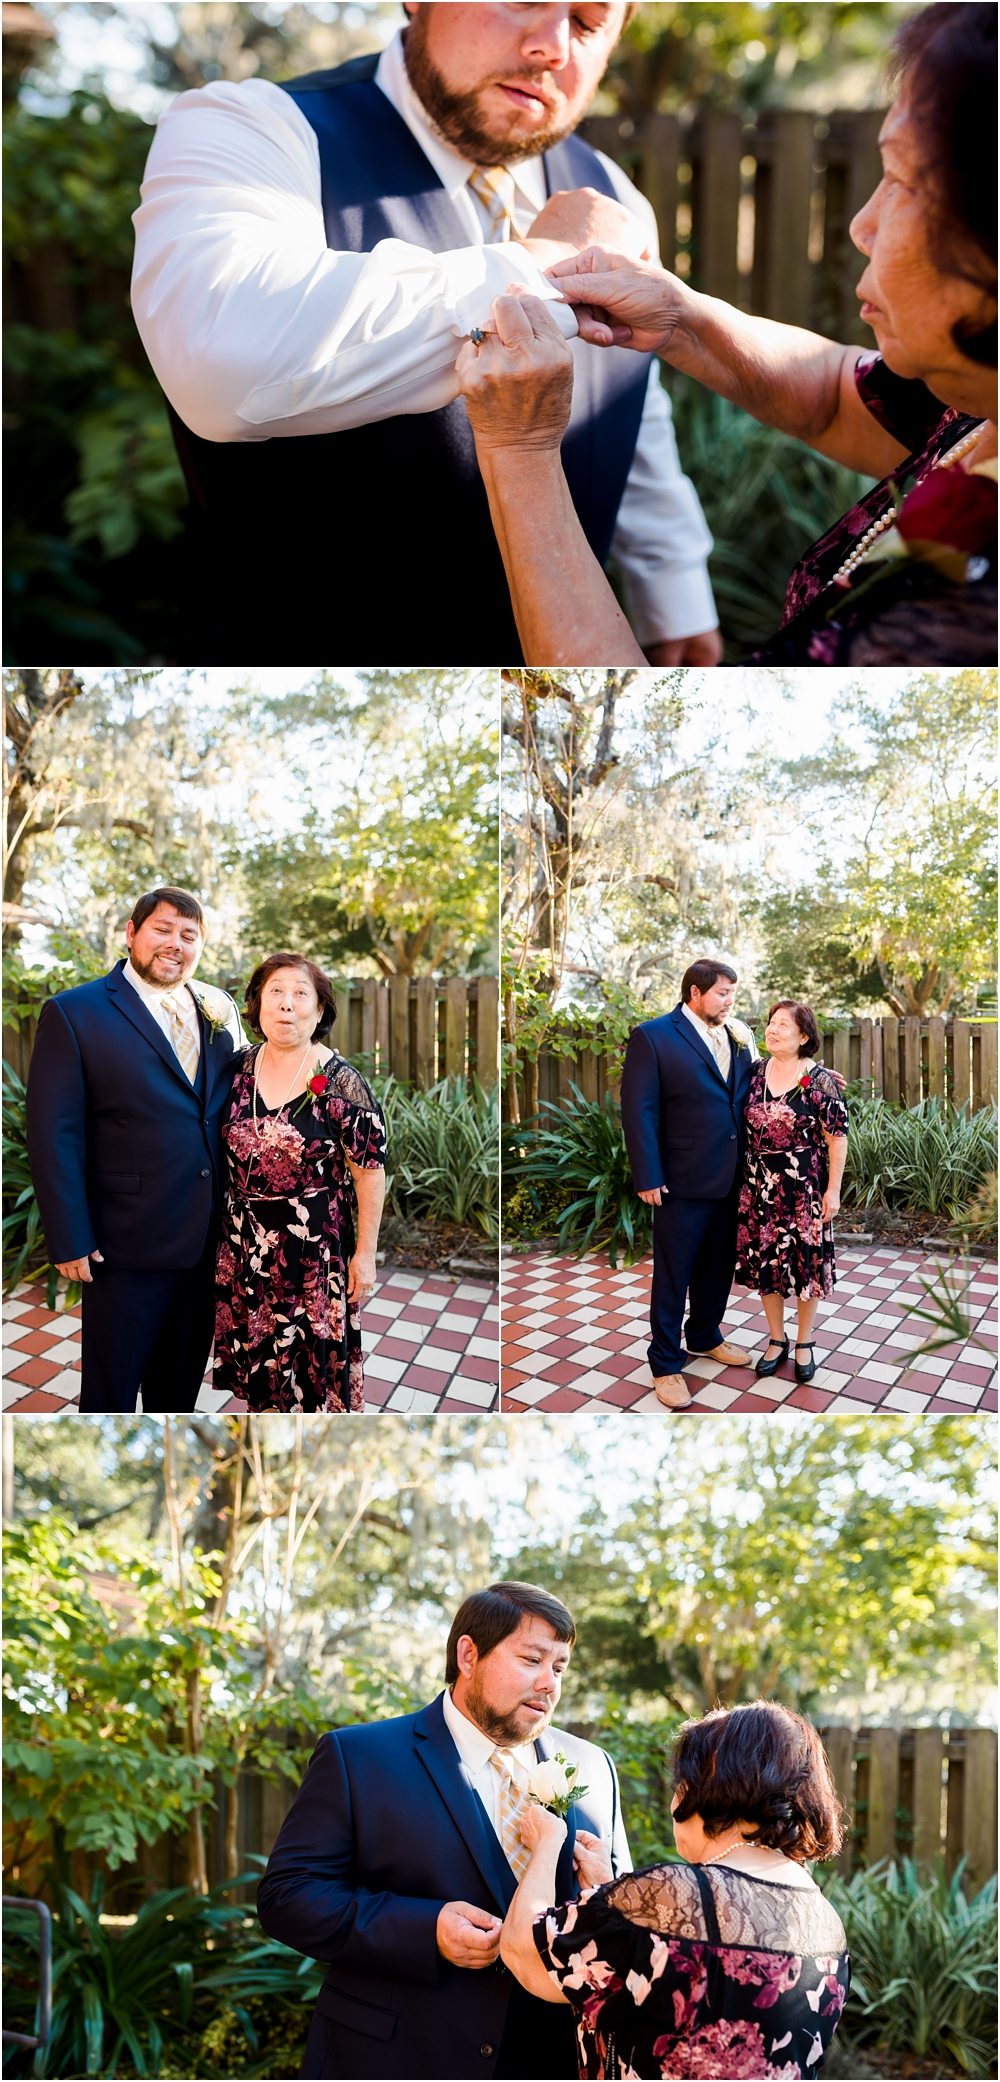 luebe-florida-wedding-photographer-kiersten-grant-65.jpg